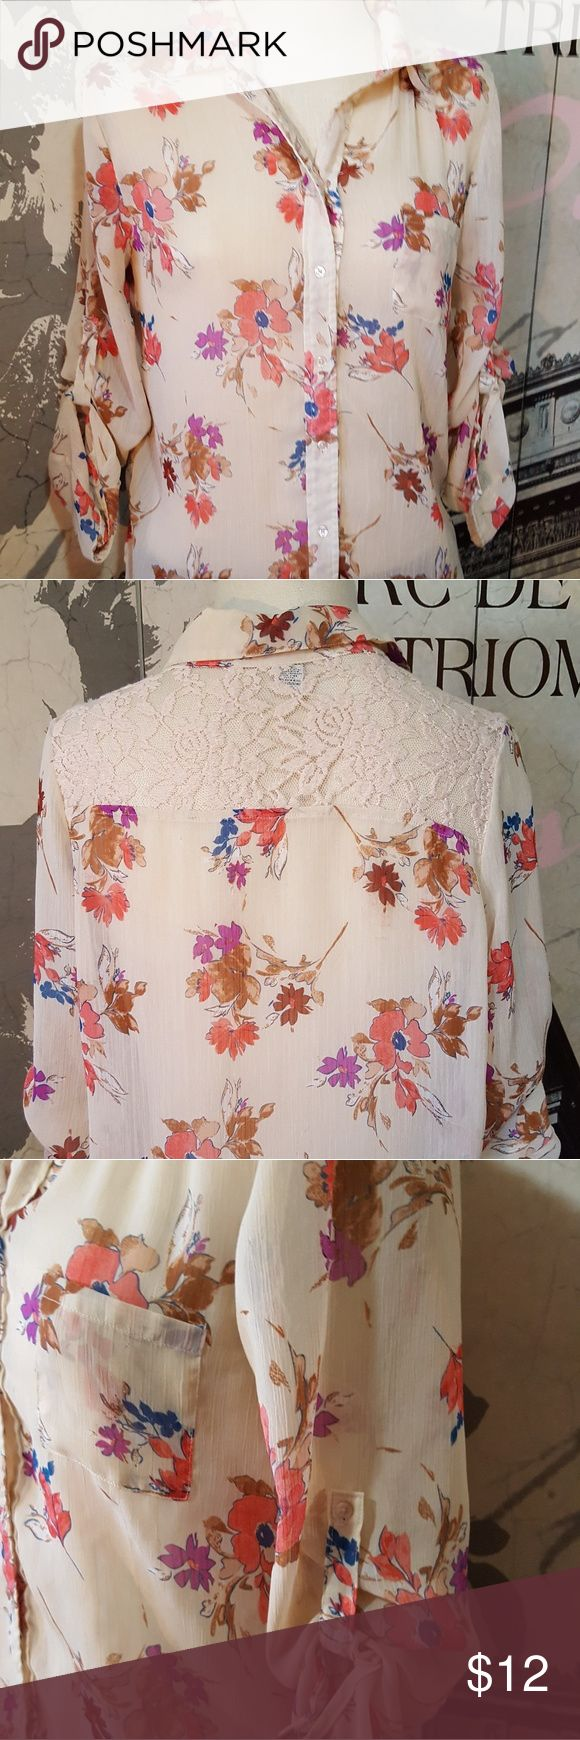 American Rag floral blouse Sheer, lightweight floral blouse.  American Rag brand.  Good shape, no stains or holes. American Rag Tops Blouses